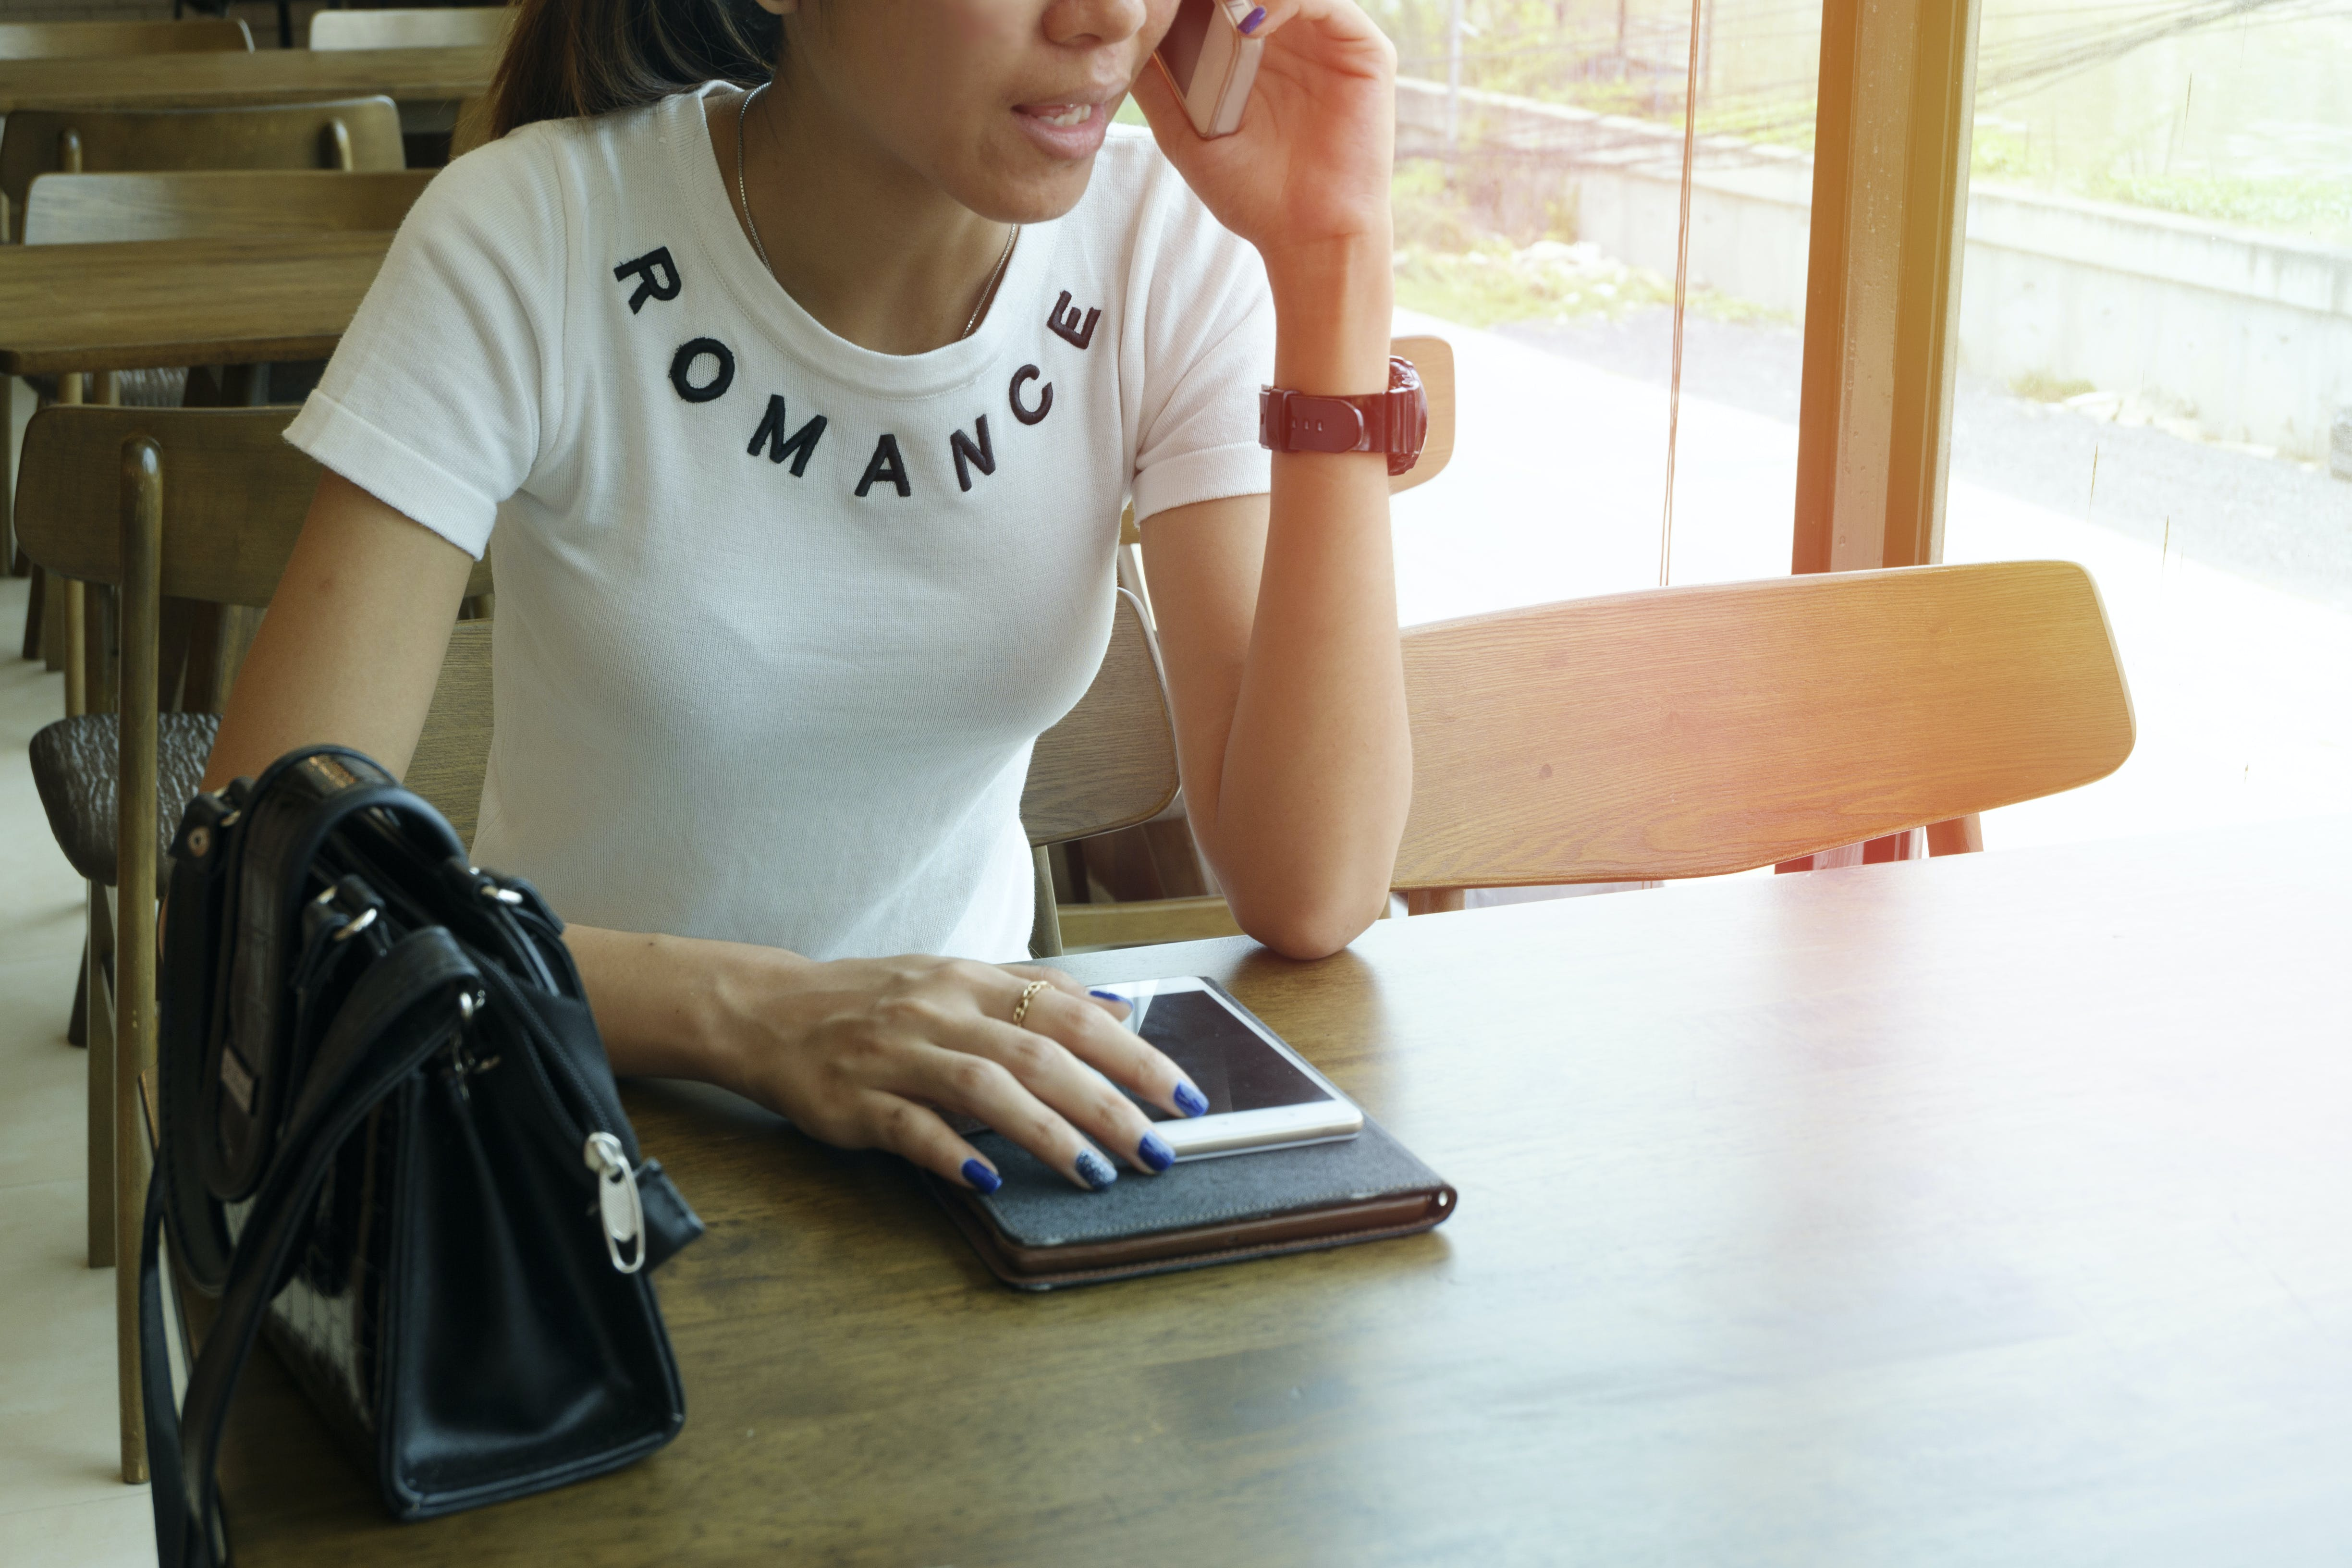 Woman Wearing White Romance-printed Crew-neck T-shirt While Sitting on Brown Wooden Chair